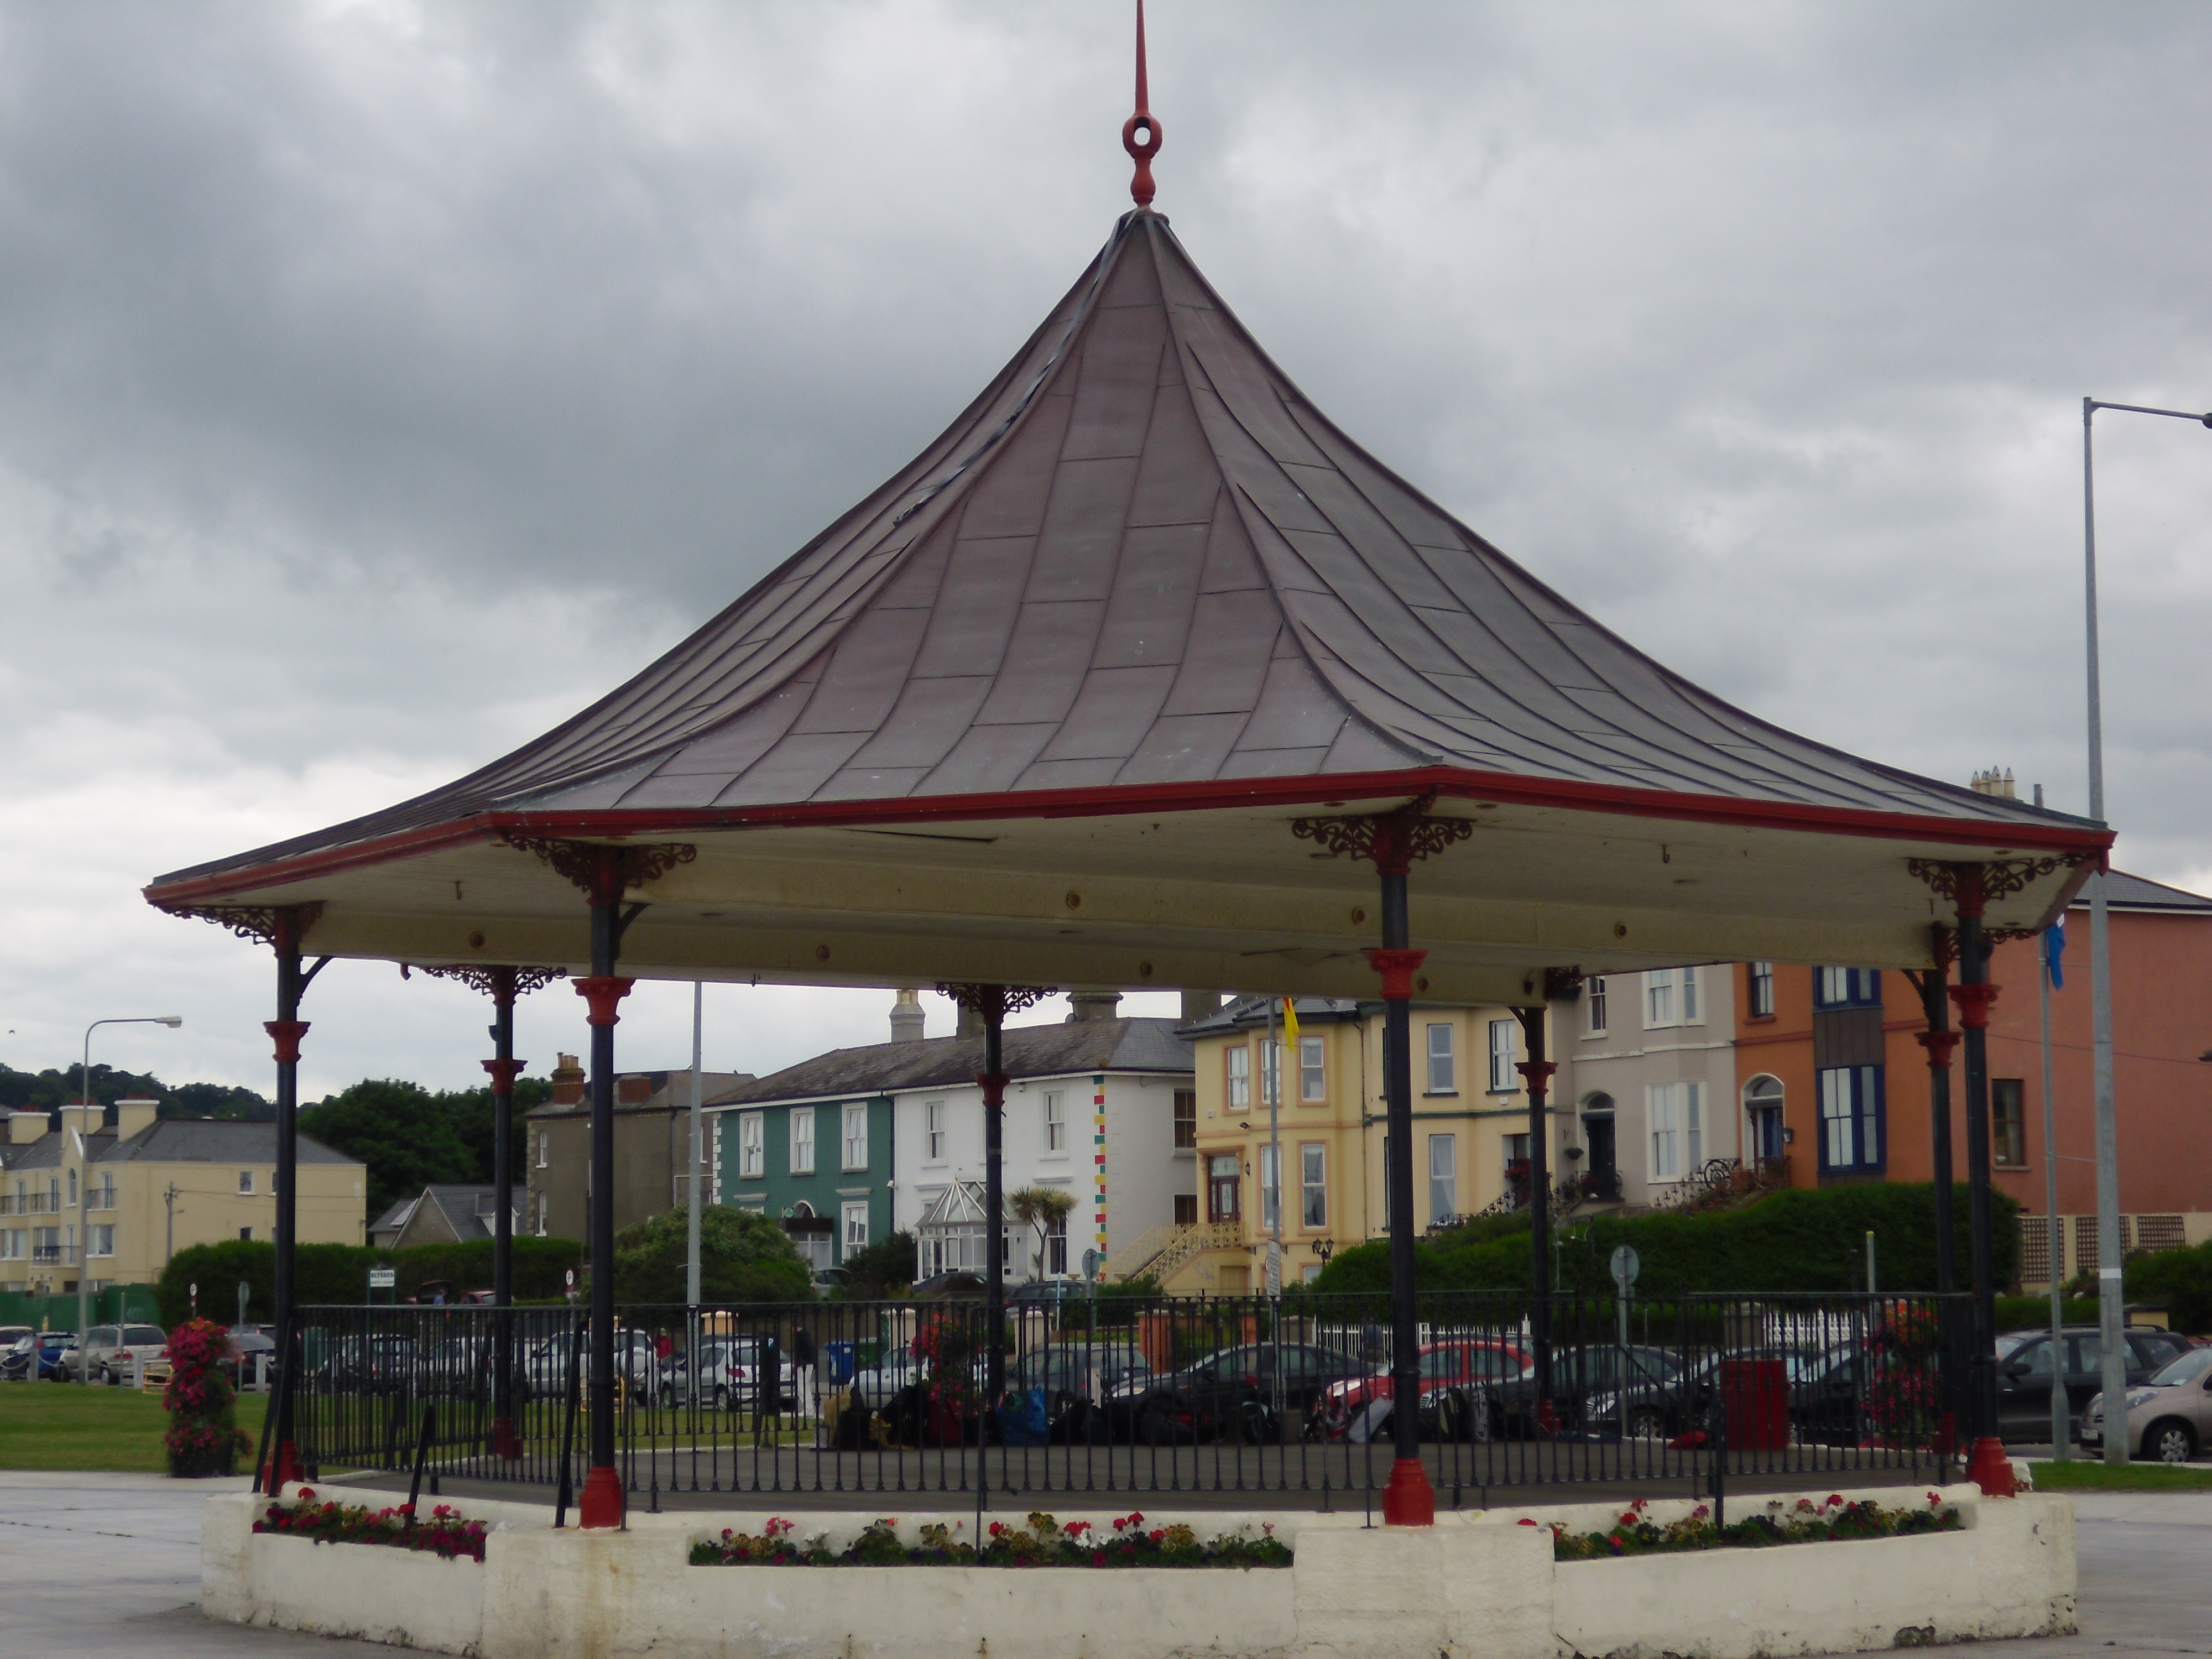 Bray Bandstand